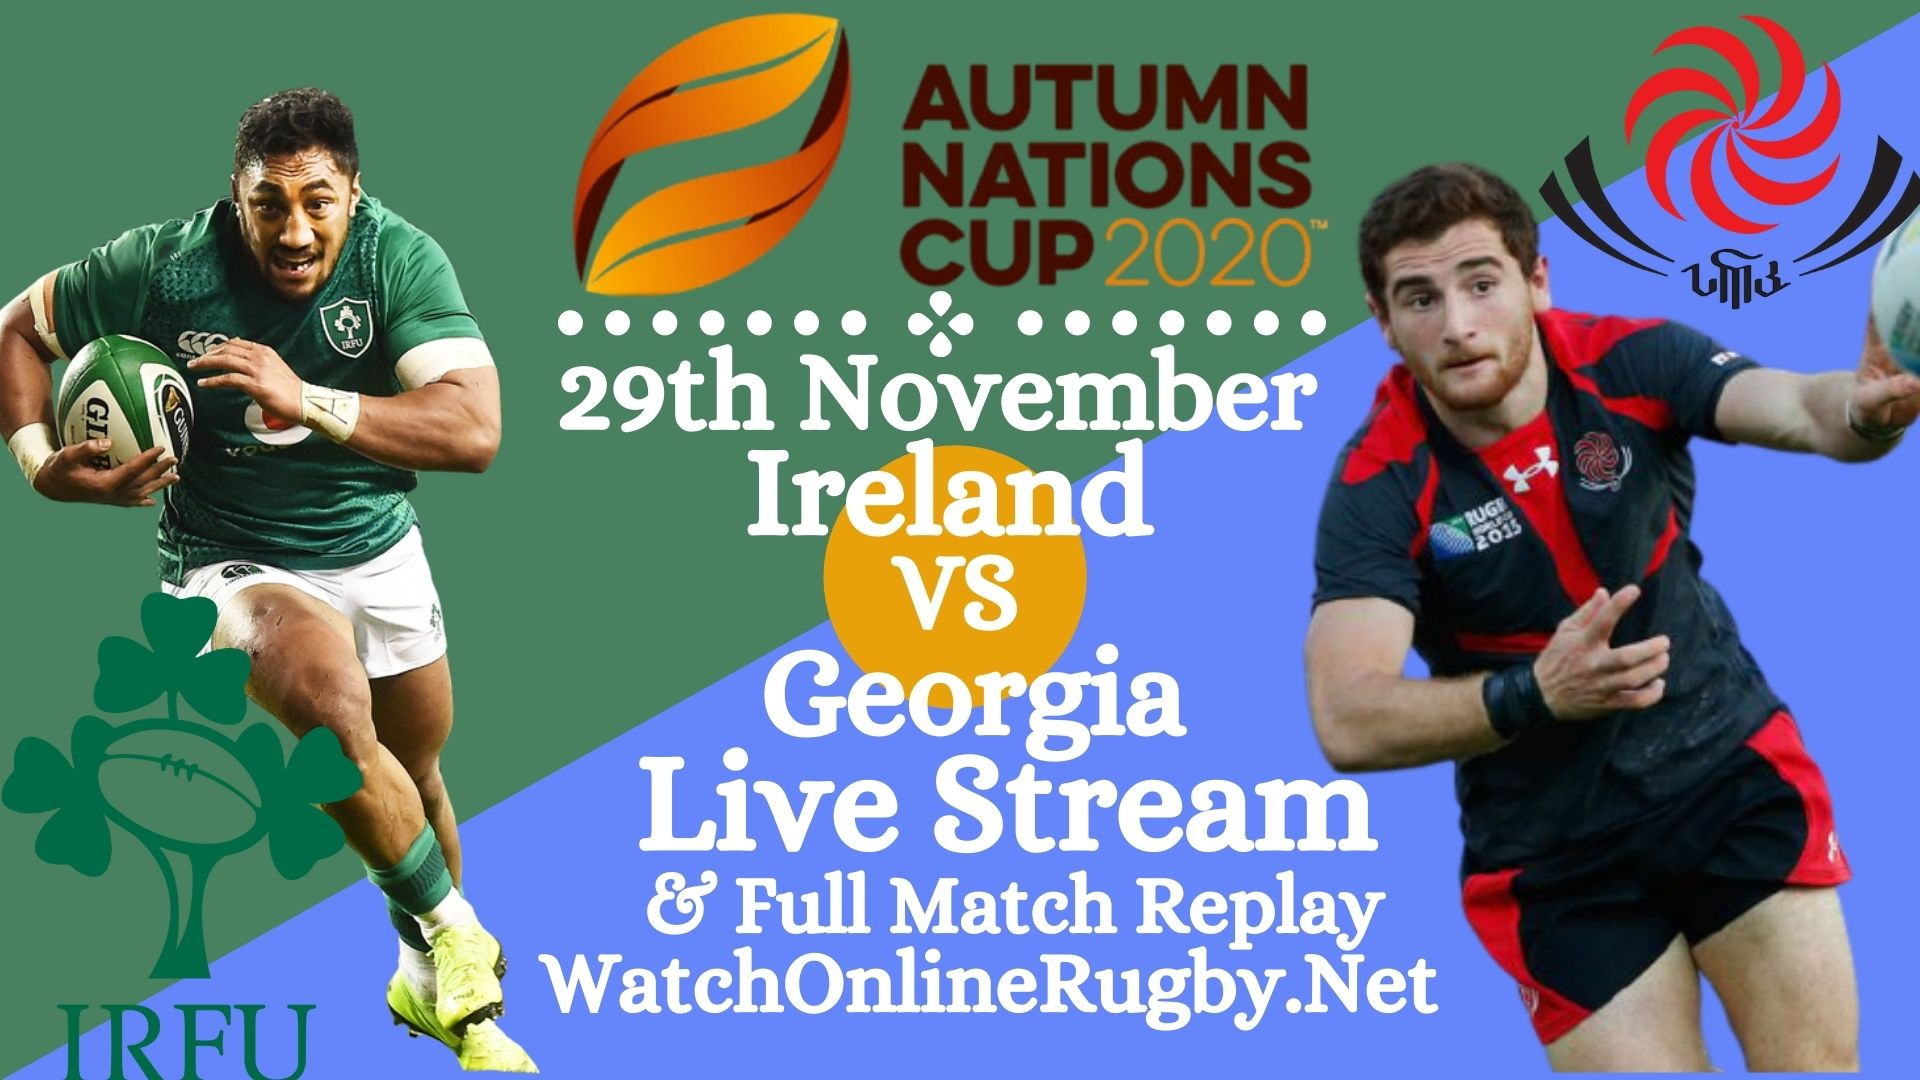 Georgia VS Ireland Live Stream Match Full Replay